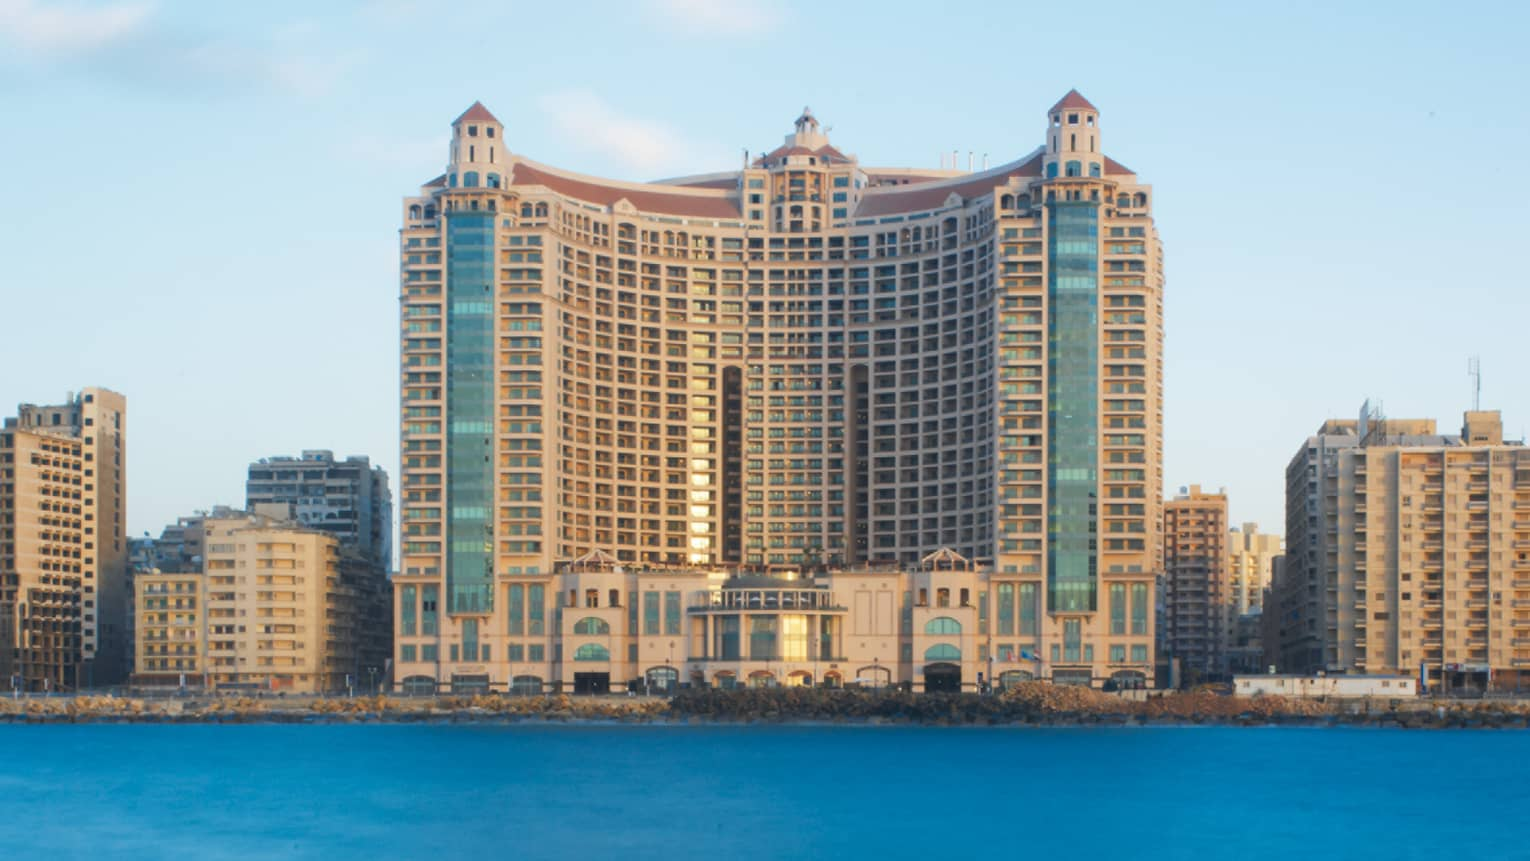 Exterior of Four Seasons Hotel Alexandria at San Stefano, Egypt, on sunny day from Mediterranean Sea